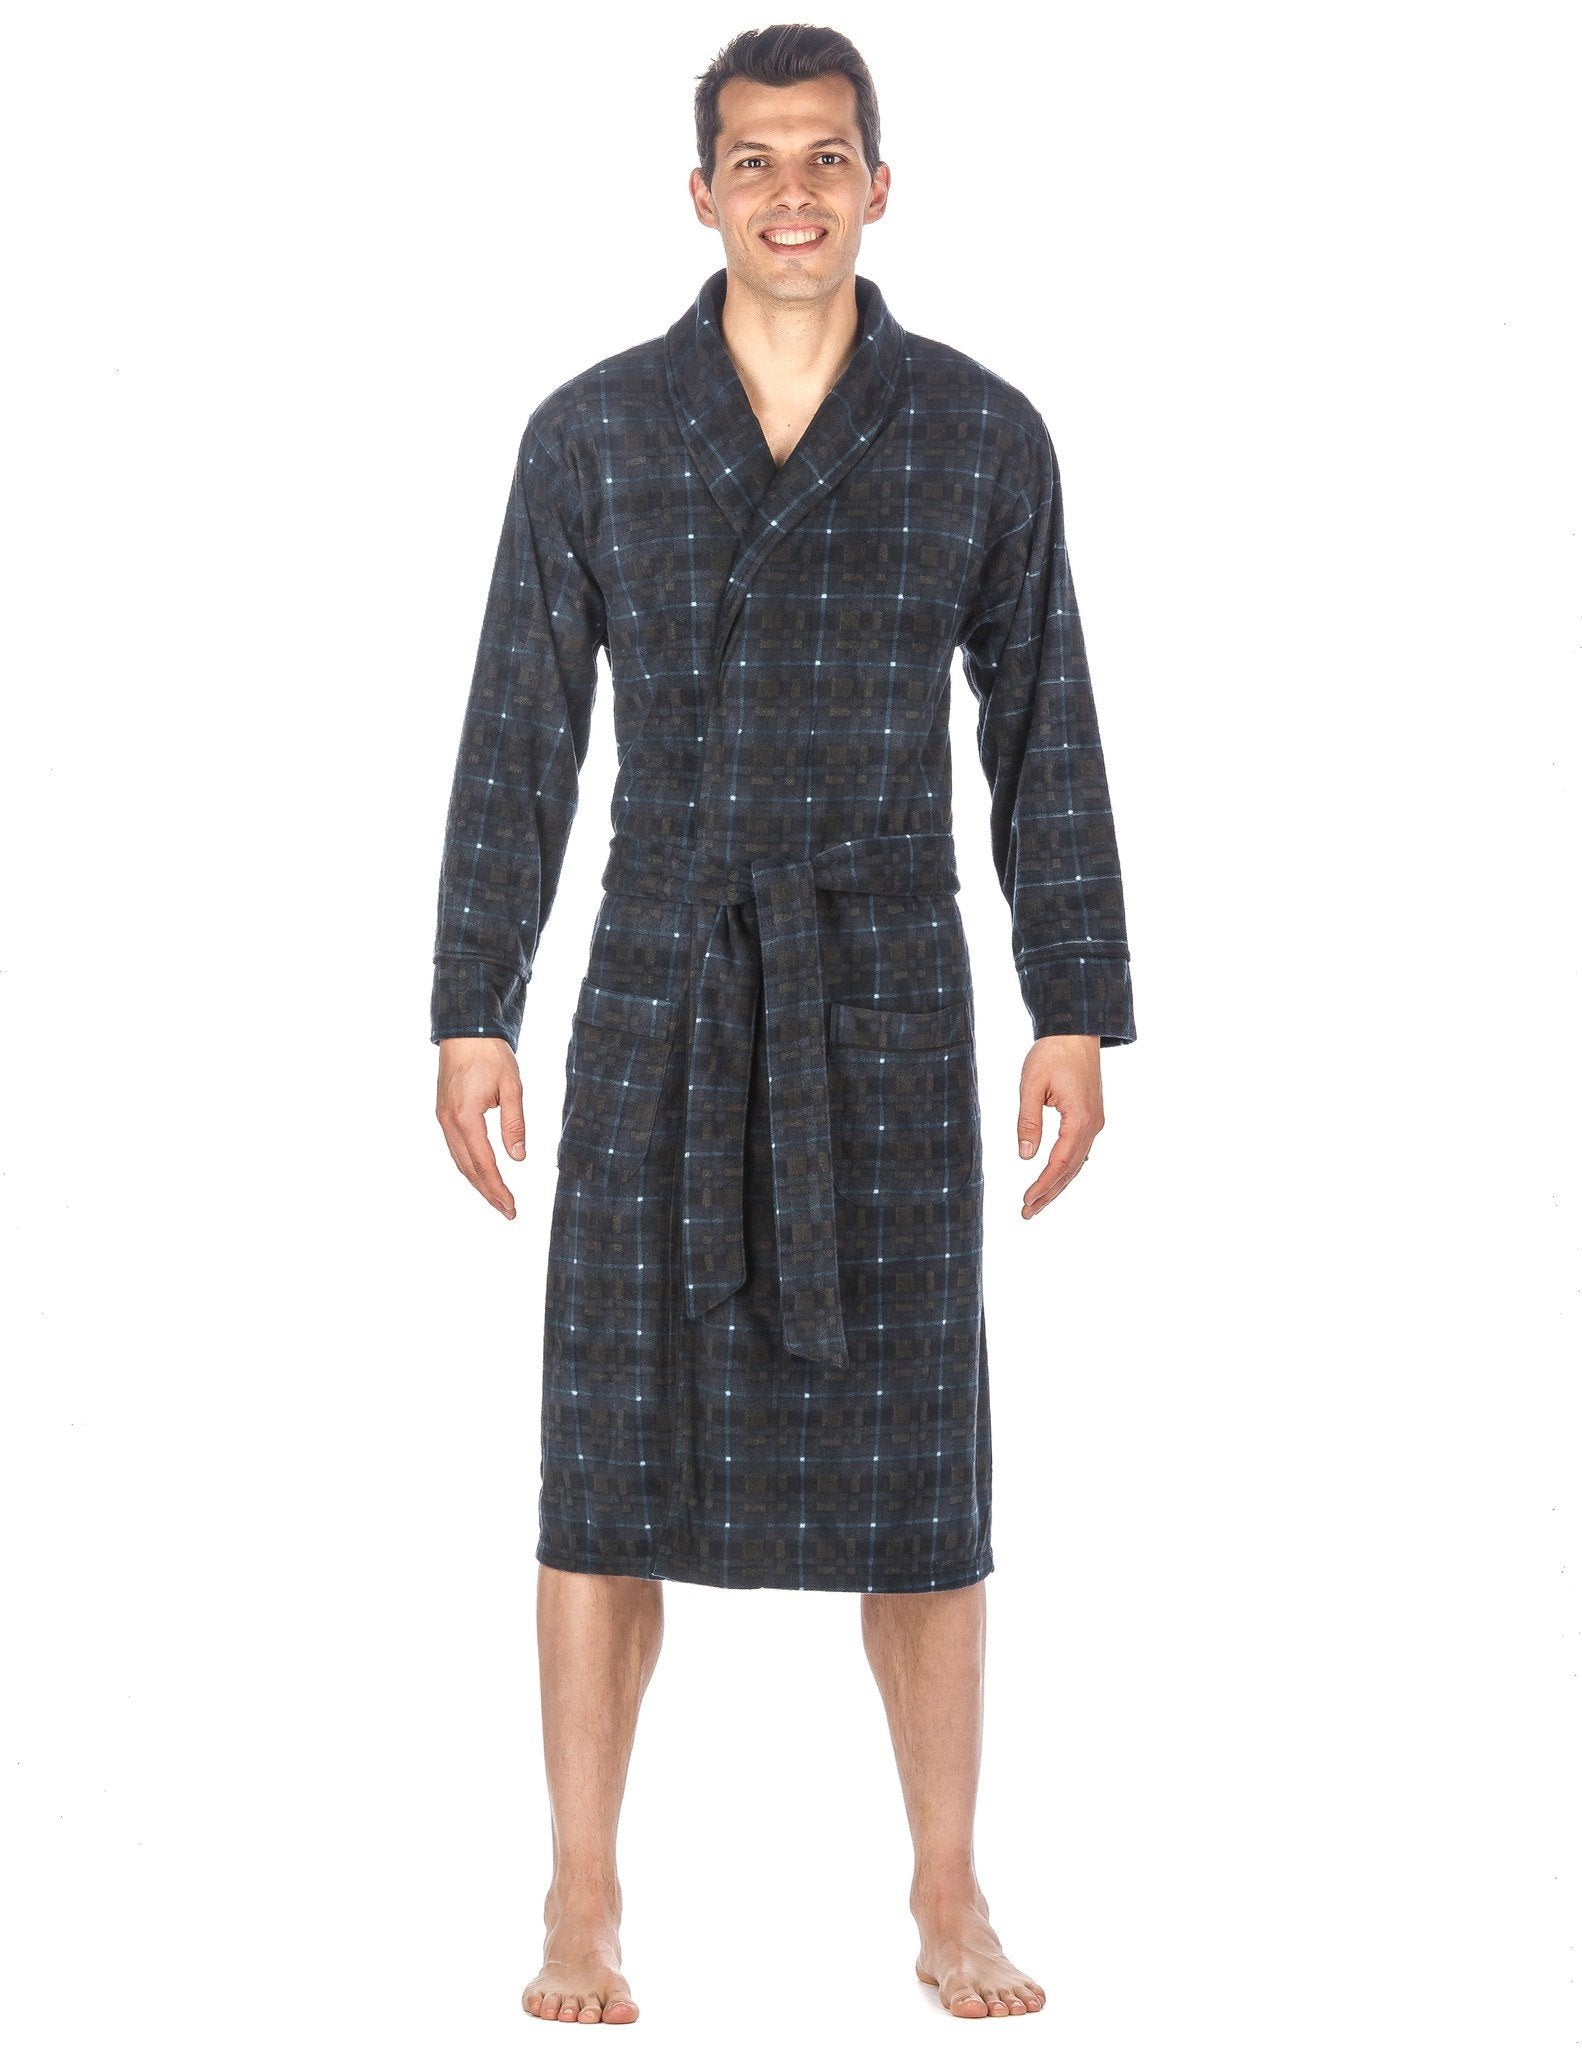 Men's Microfleece Robe - Plaid Blue